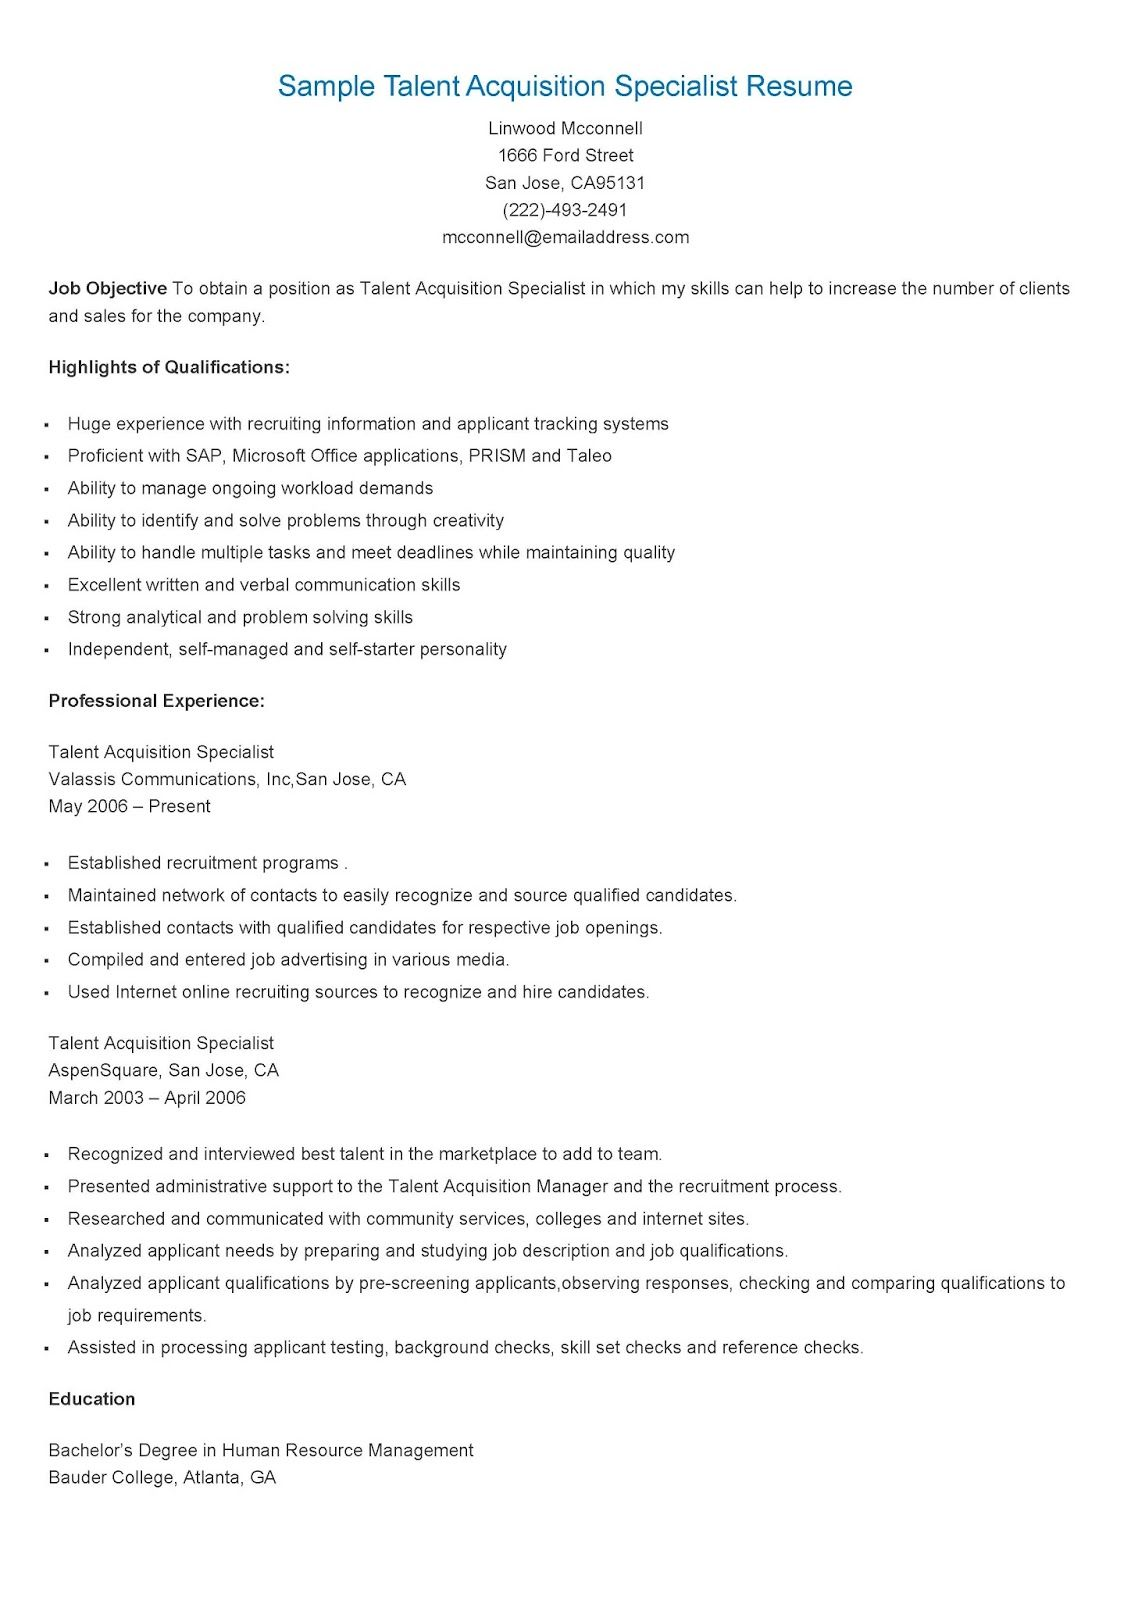 sample talent acquisition specialist resume resame pinterest